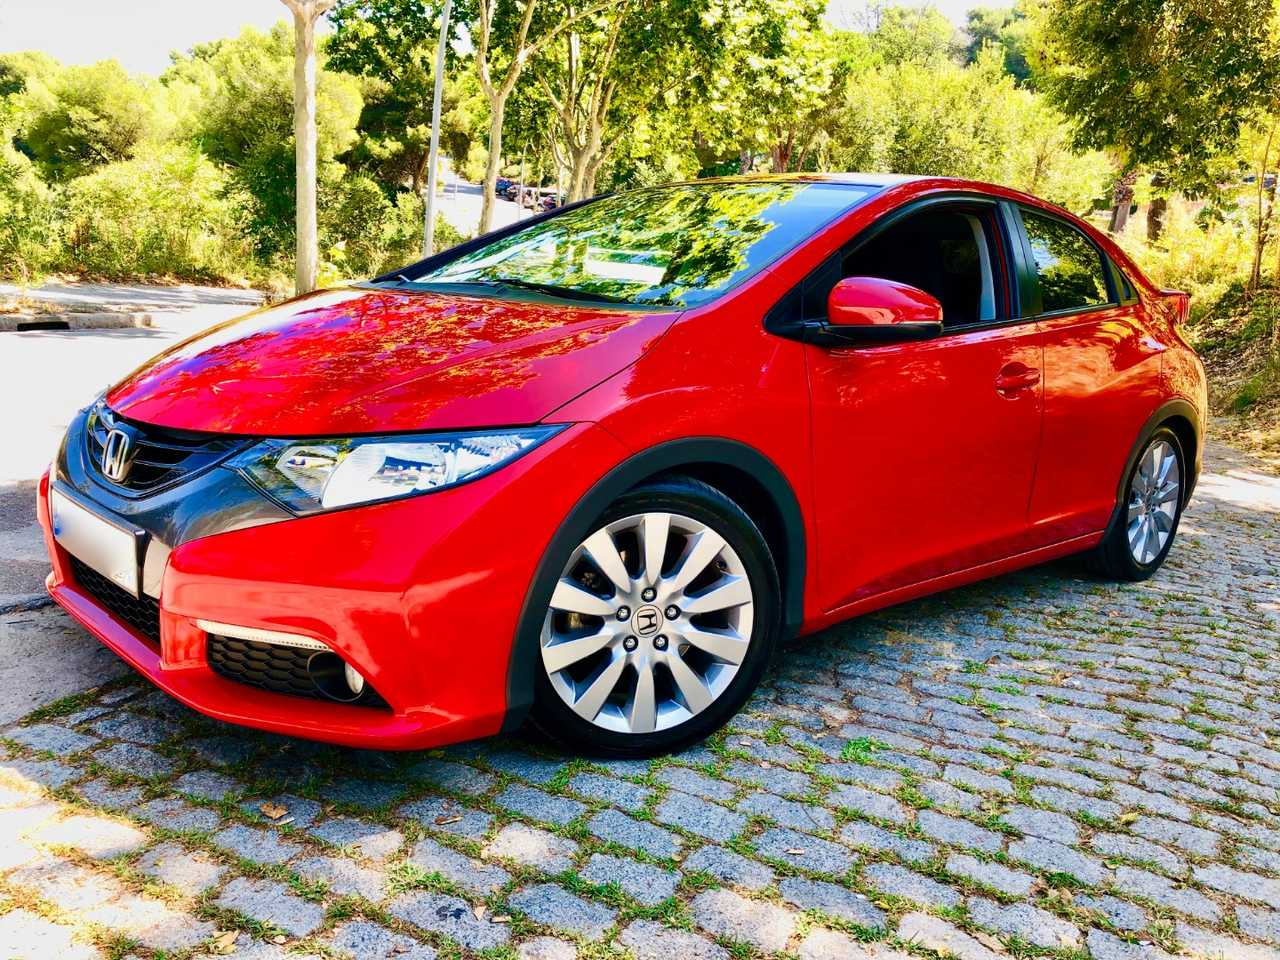 Honda Civic 1.8 Vtec 140cv. Impecable estado. Garantia.   - Foto 1